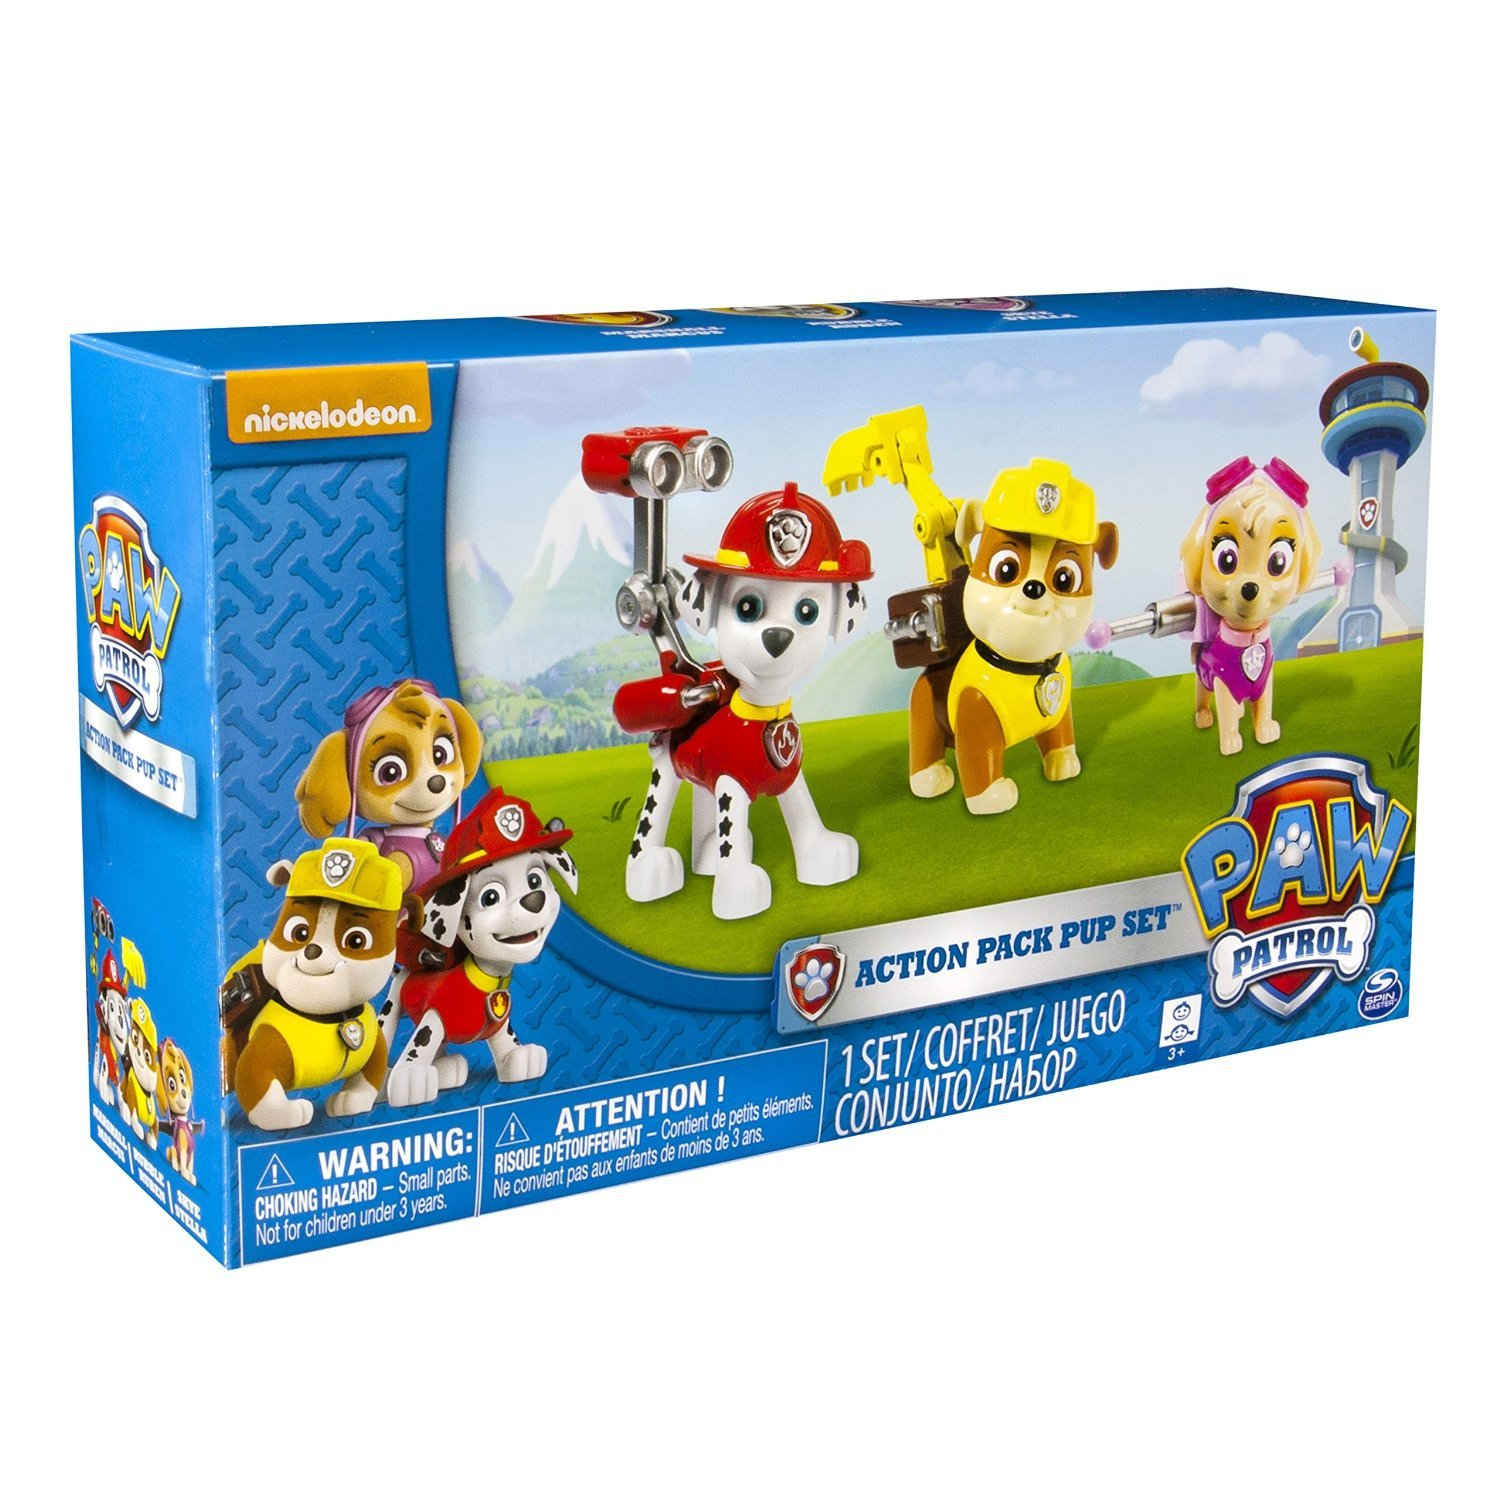 Paw Patrol Toy For Everyone : Paw patrol toys figures by nickelodeon